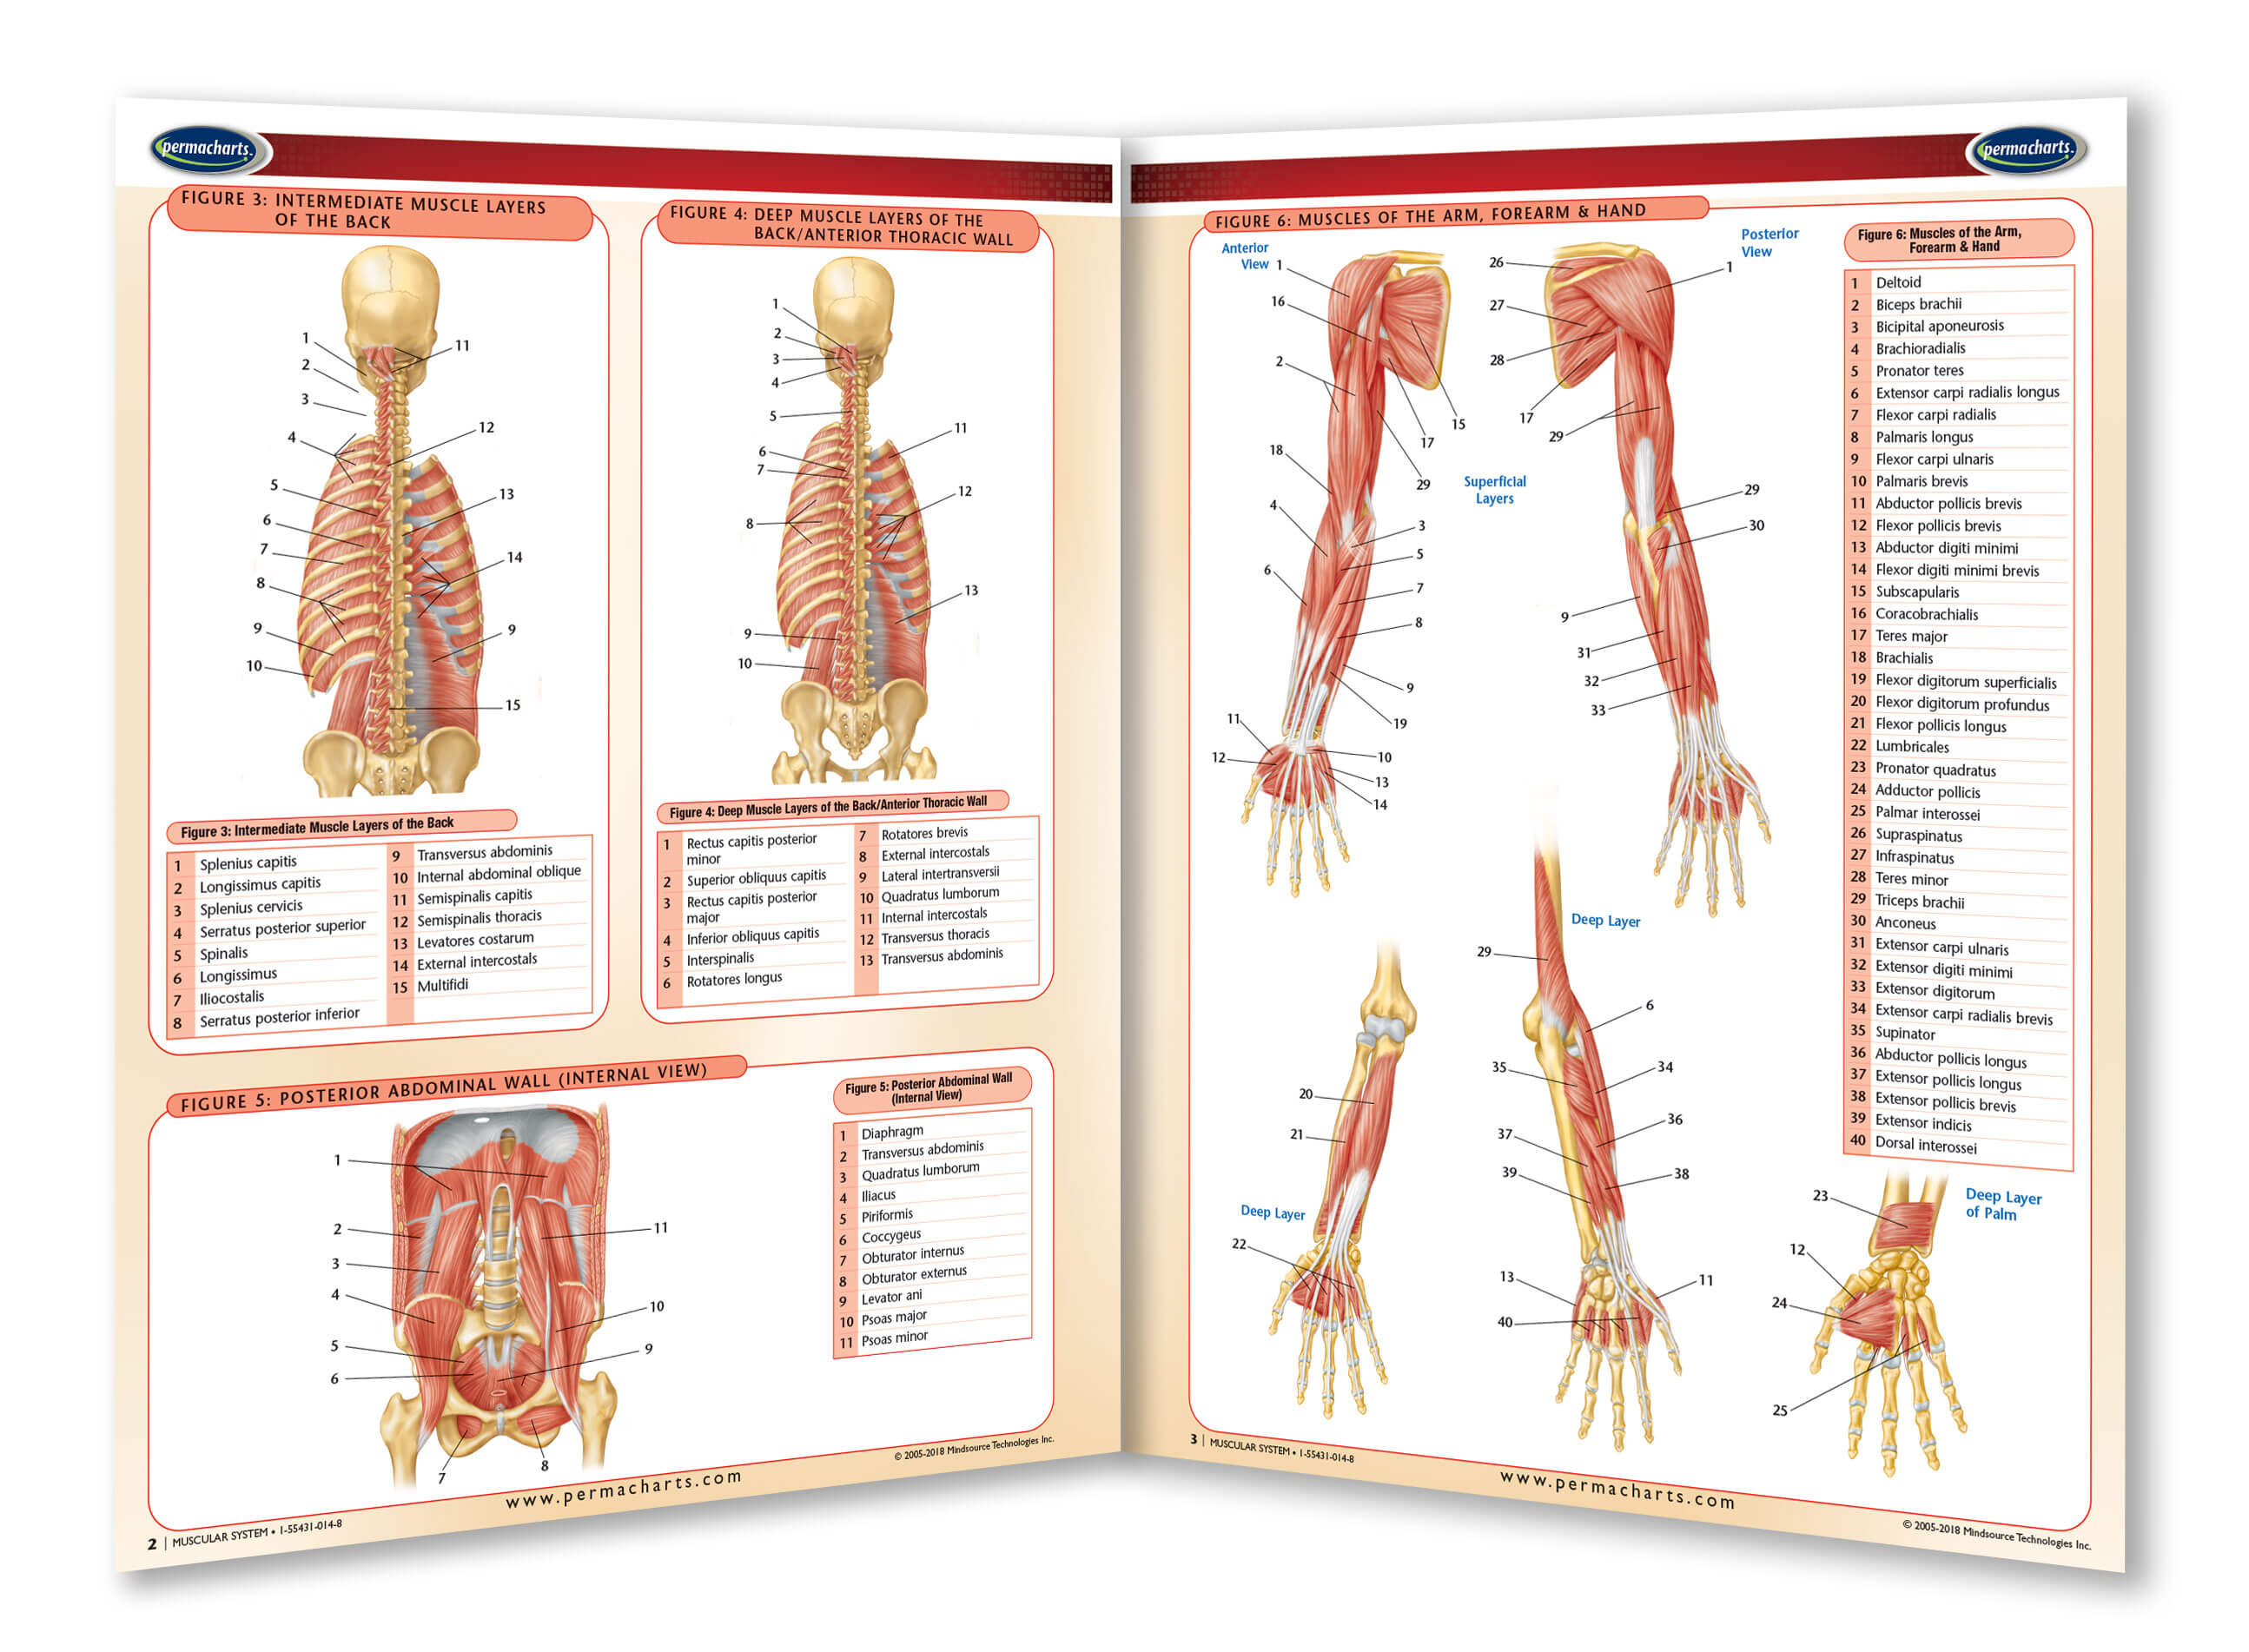 Muscular System Study Guide - Quick Reference Resource